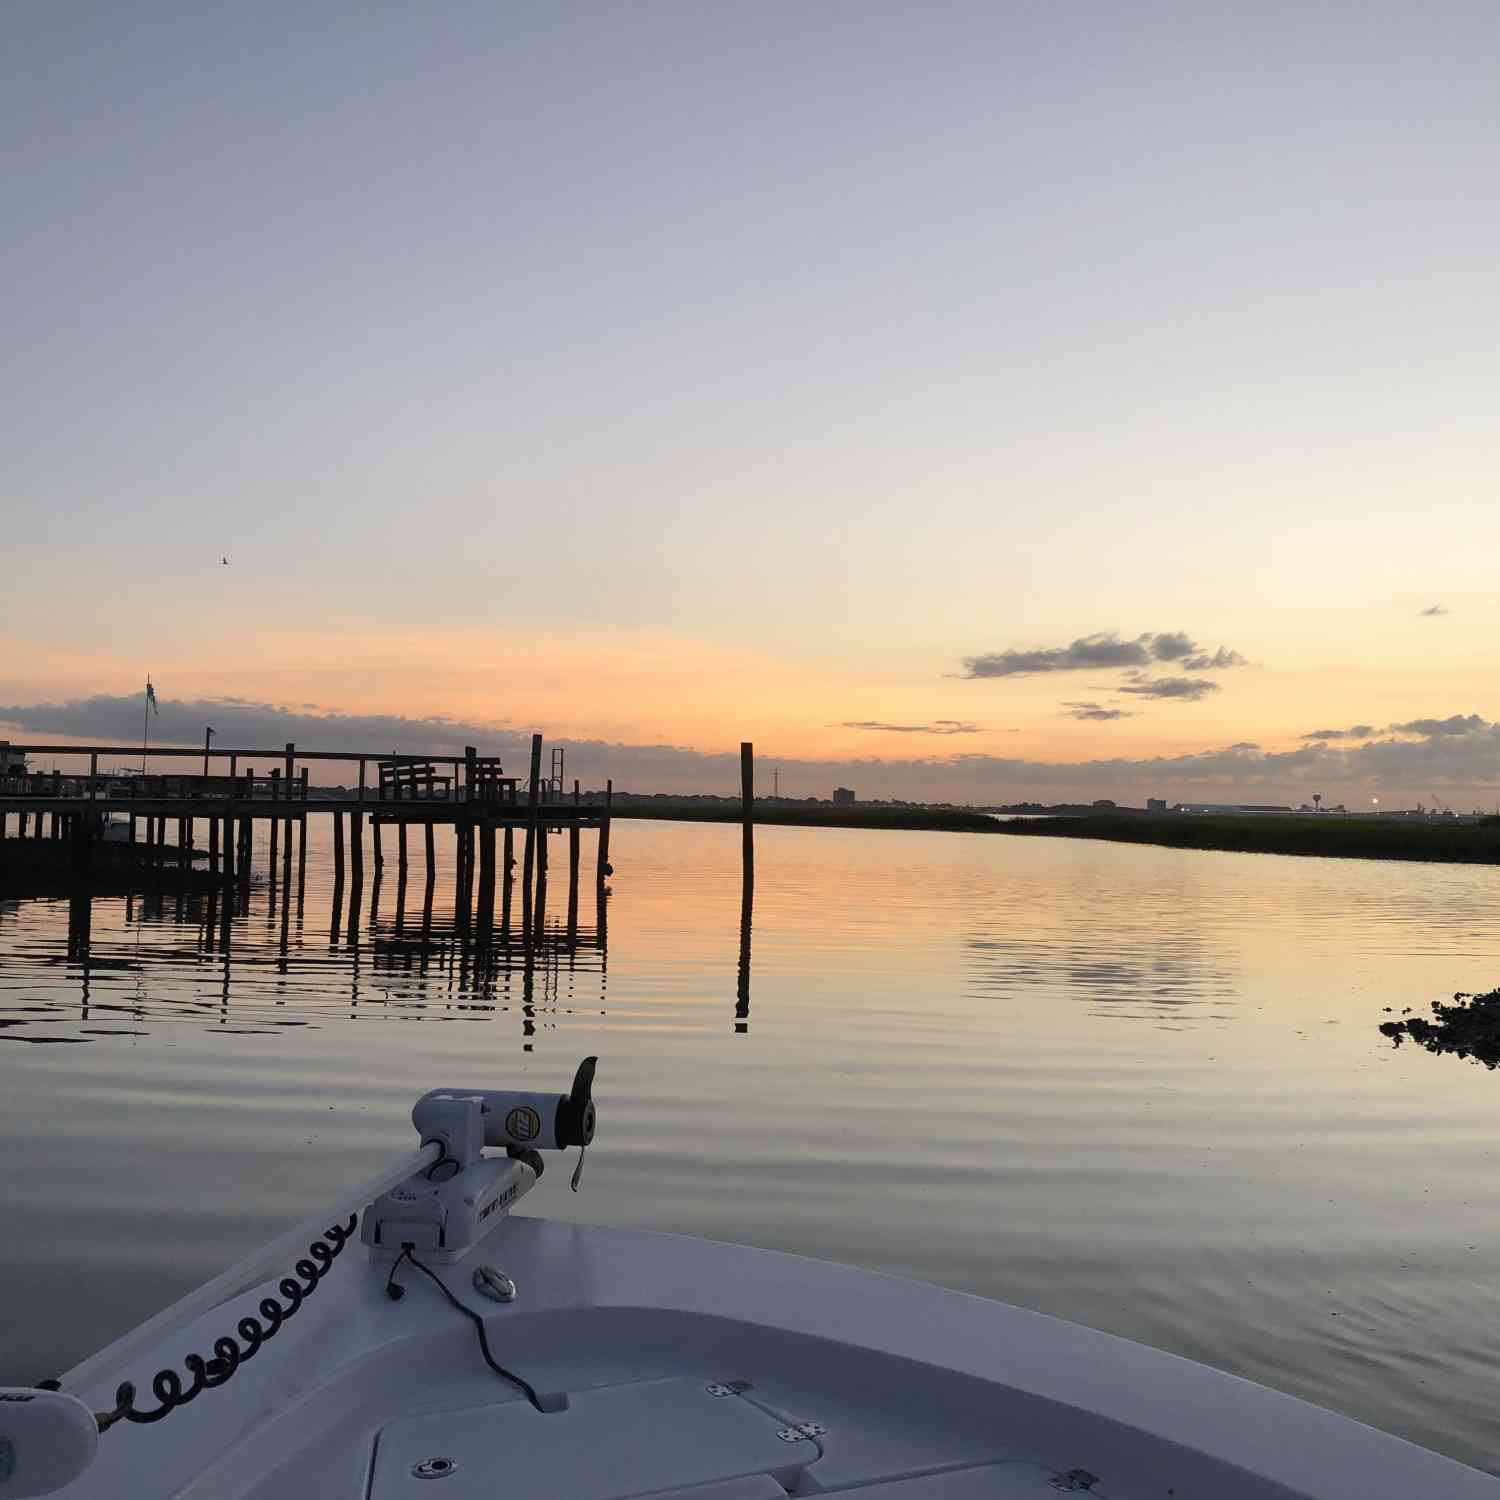 Title: Sunrise - On board their Sportsman Masters 247 Bay Boat - Location: Atlantic Beach , NC. Participating in the Photo Contest #SportsmanAugust2018